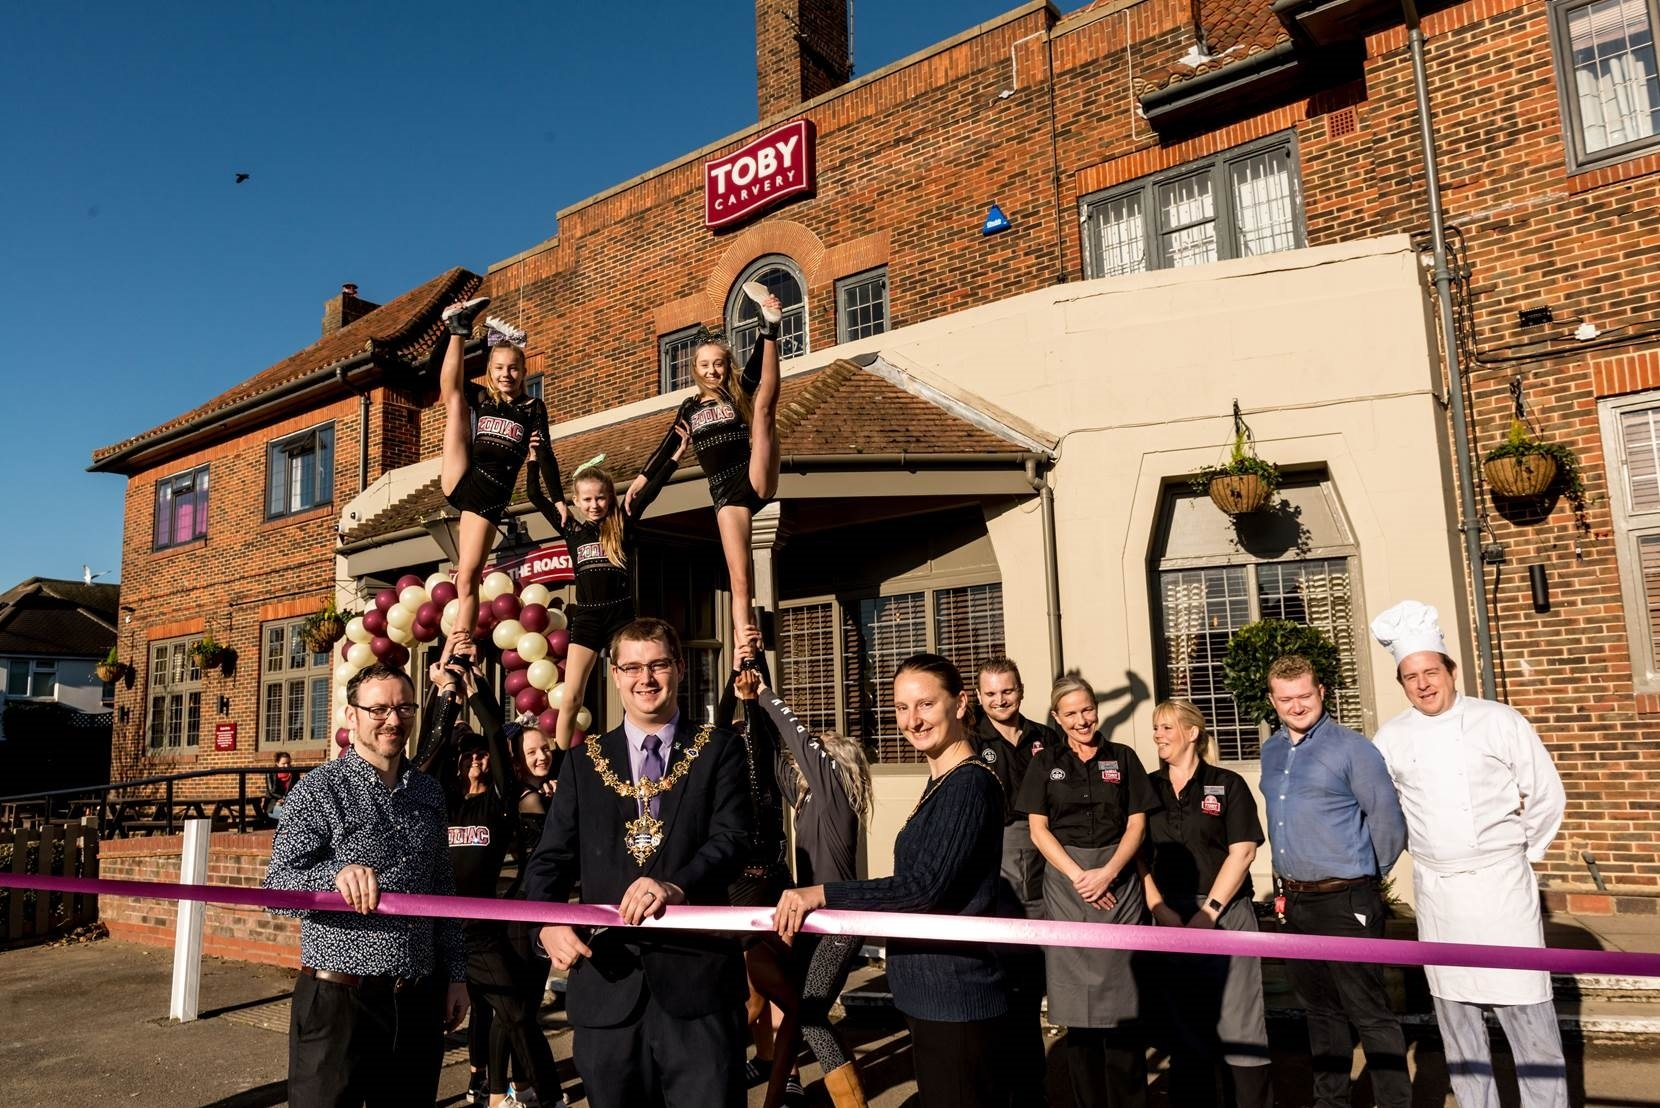 The Mayor and Mayoress of Worthing, Alex and Fran Harman (centre), cut the ribbon and reopen the new look Toby Carvery Downlands with the help of the Toby staff and the Zodiac cheerleading group